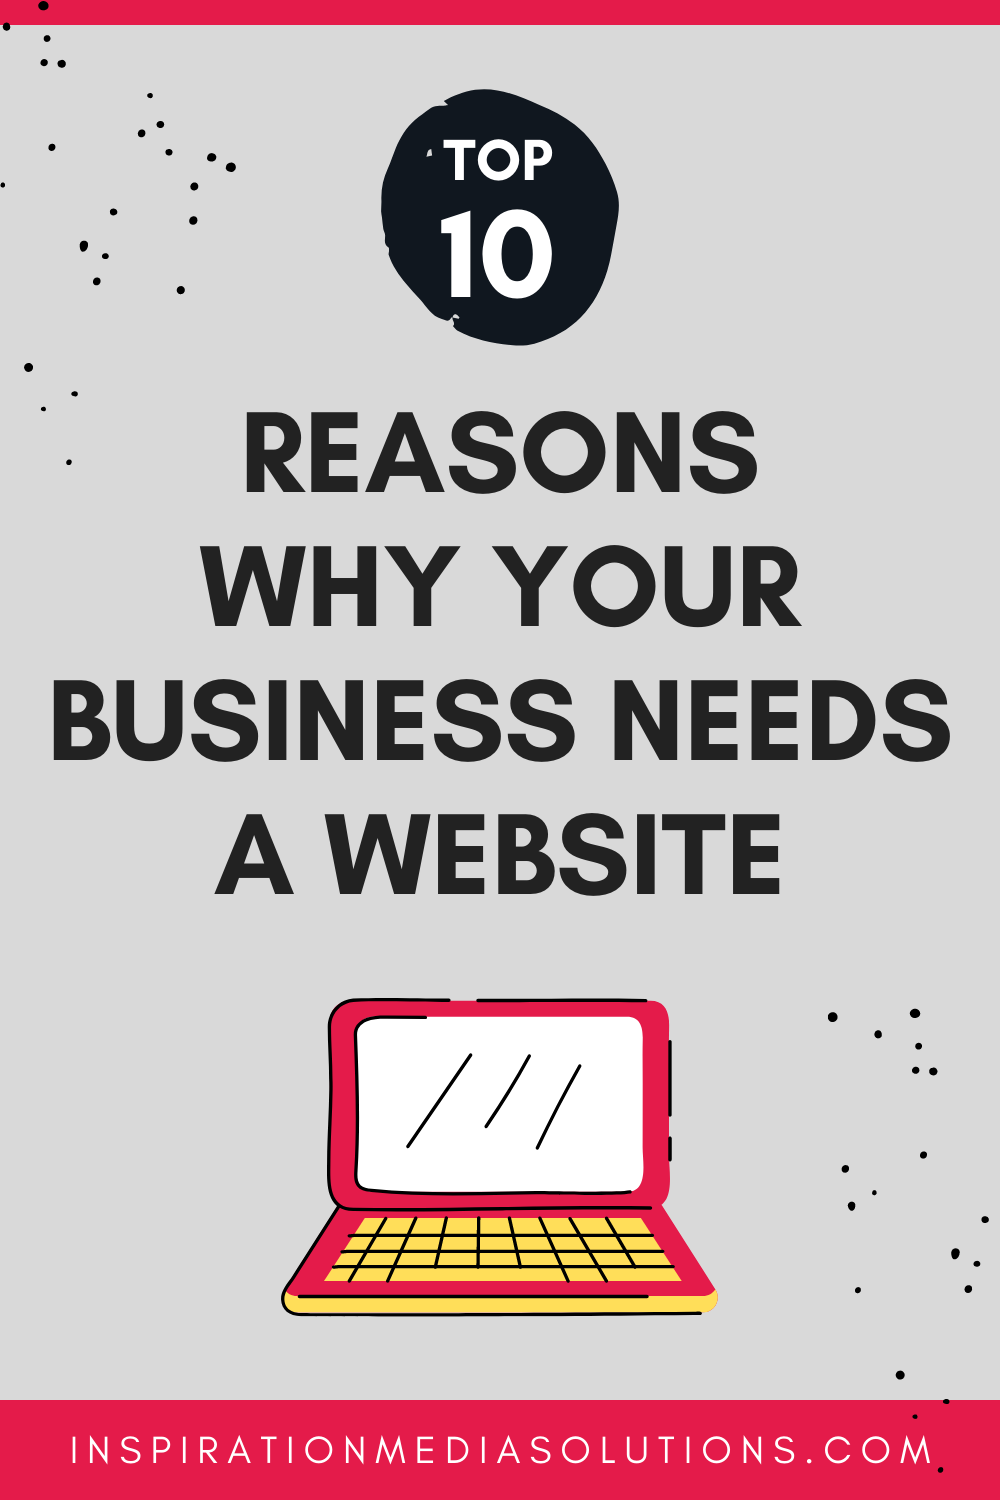 Top 10 Reasons Why Your Business Needs a Website